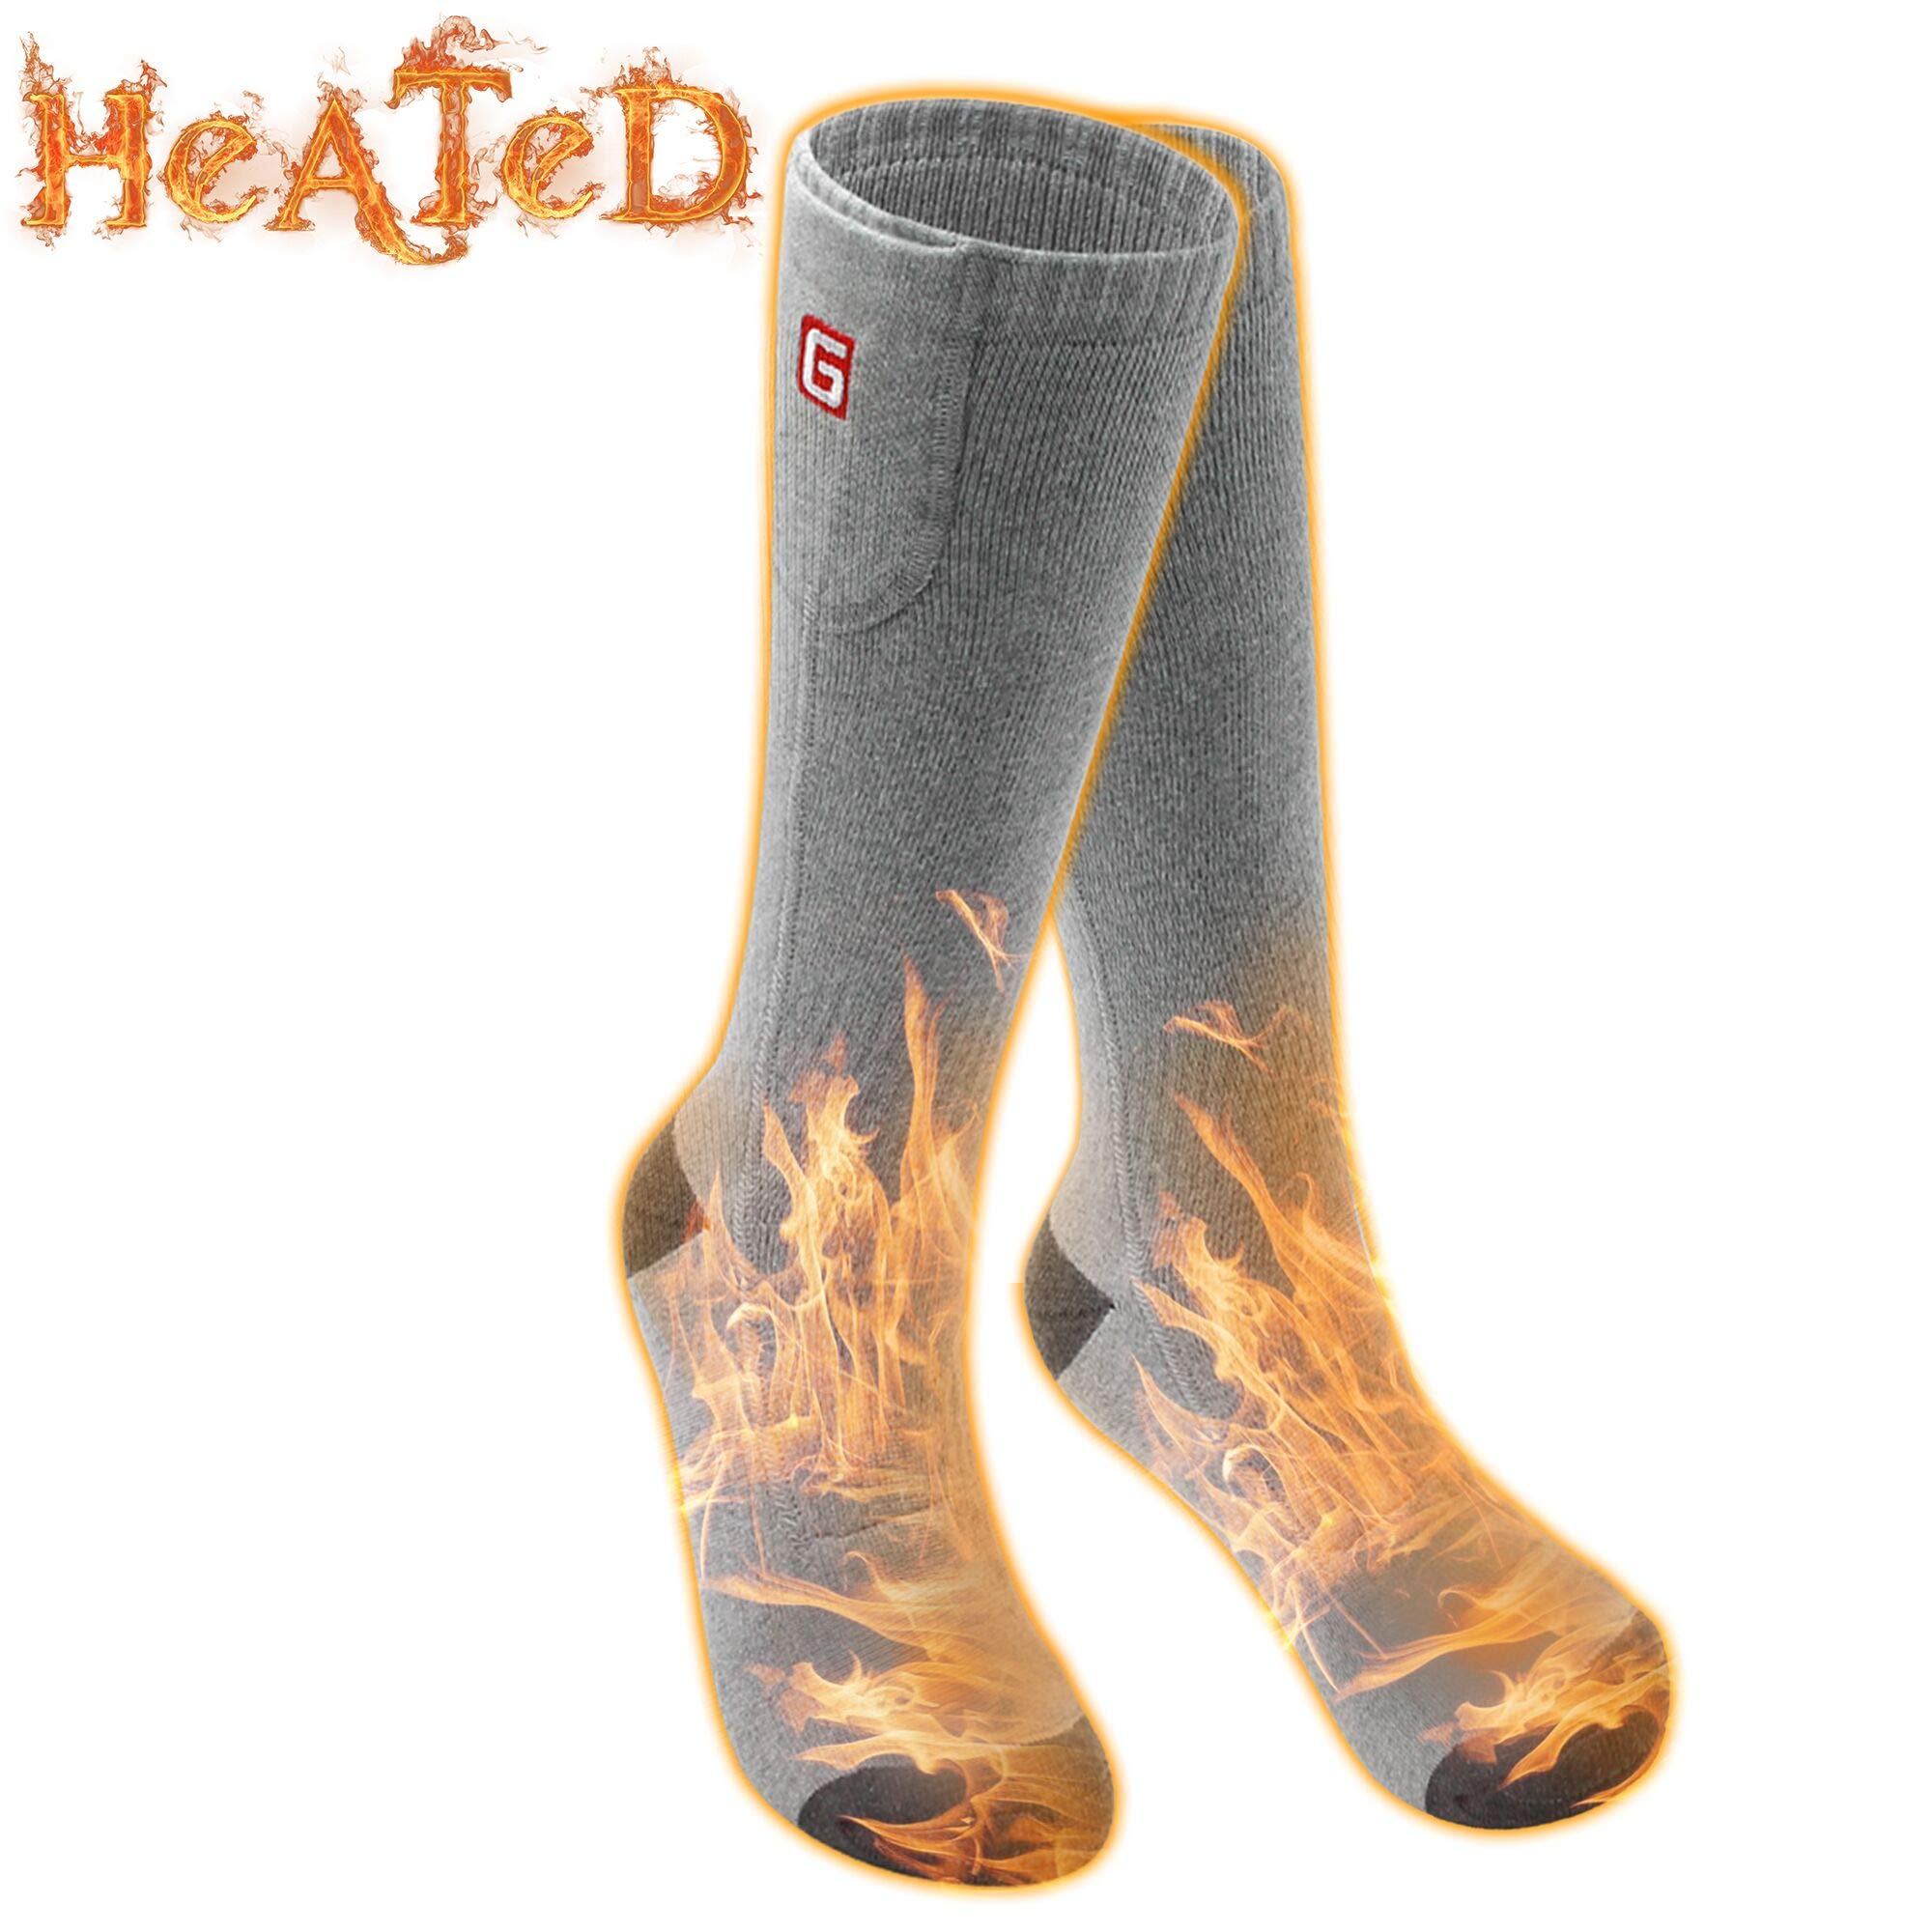 Battery Heated Socks Electric Rechargeable Heat Socks Kit Motorcycle Hunting Skiing Cotton Thick Thermal Socks Battery Powered Warm Sox Foot Warmers for Chronically Cold Feet by Greensha